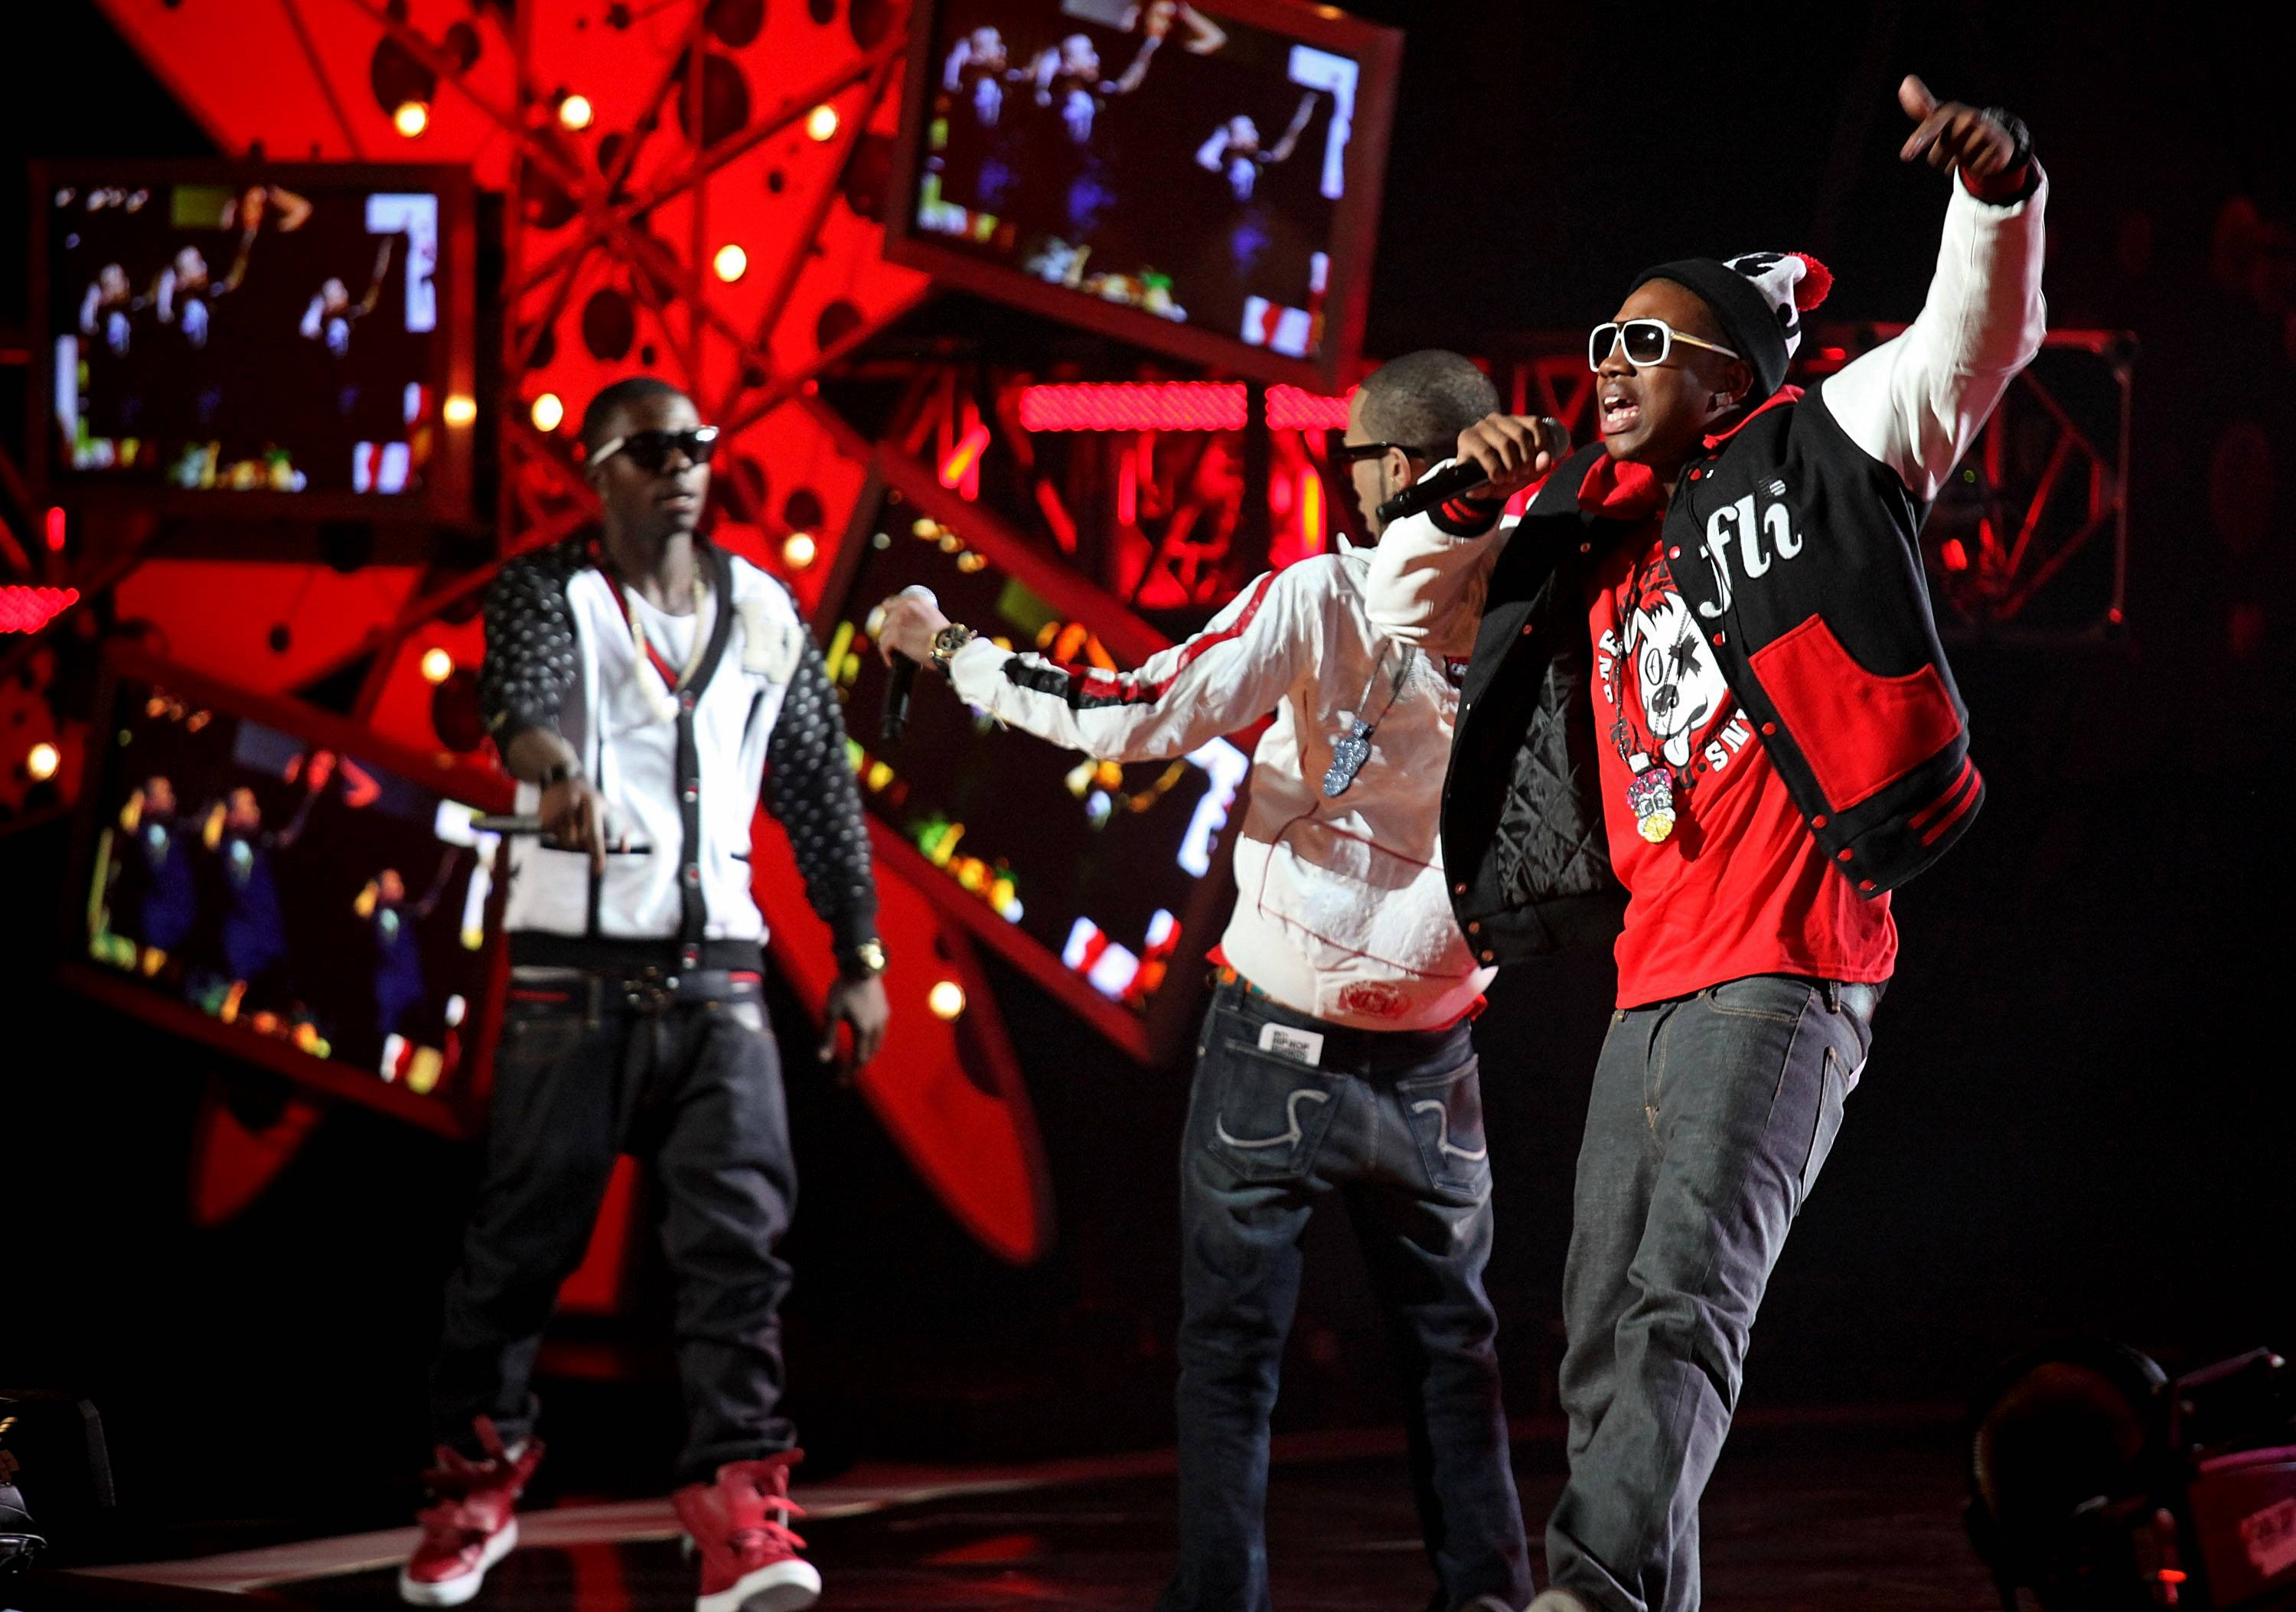 Cali Swag District - The members of Cali Swag District weren't even born when Doug E. Fresh originated the move that would inspire their current dance. (Photo: Ben Hider/PictureGroup)